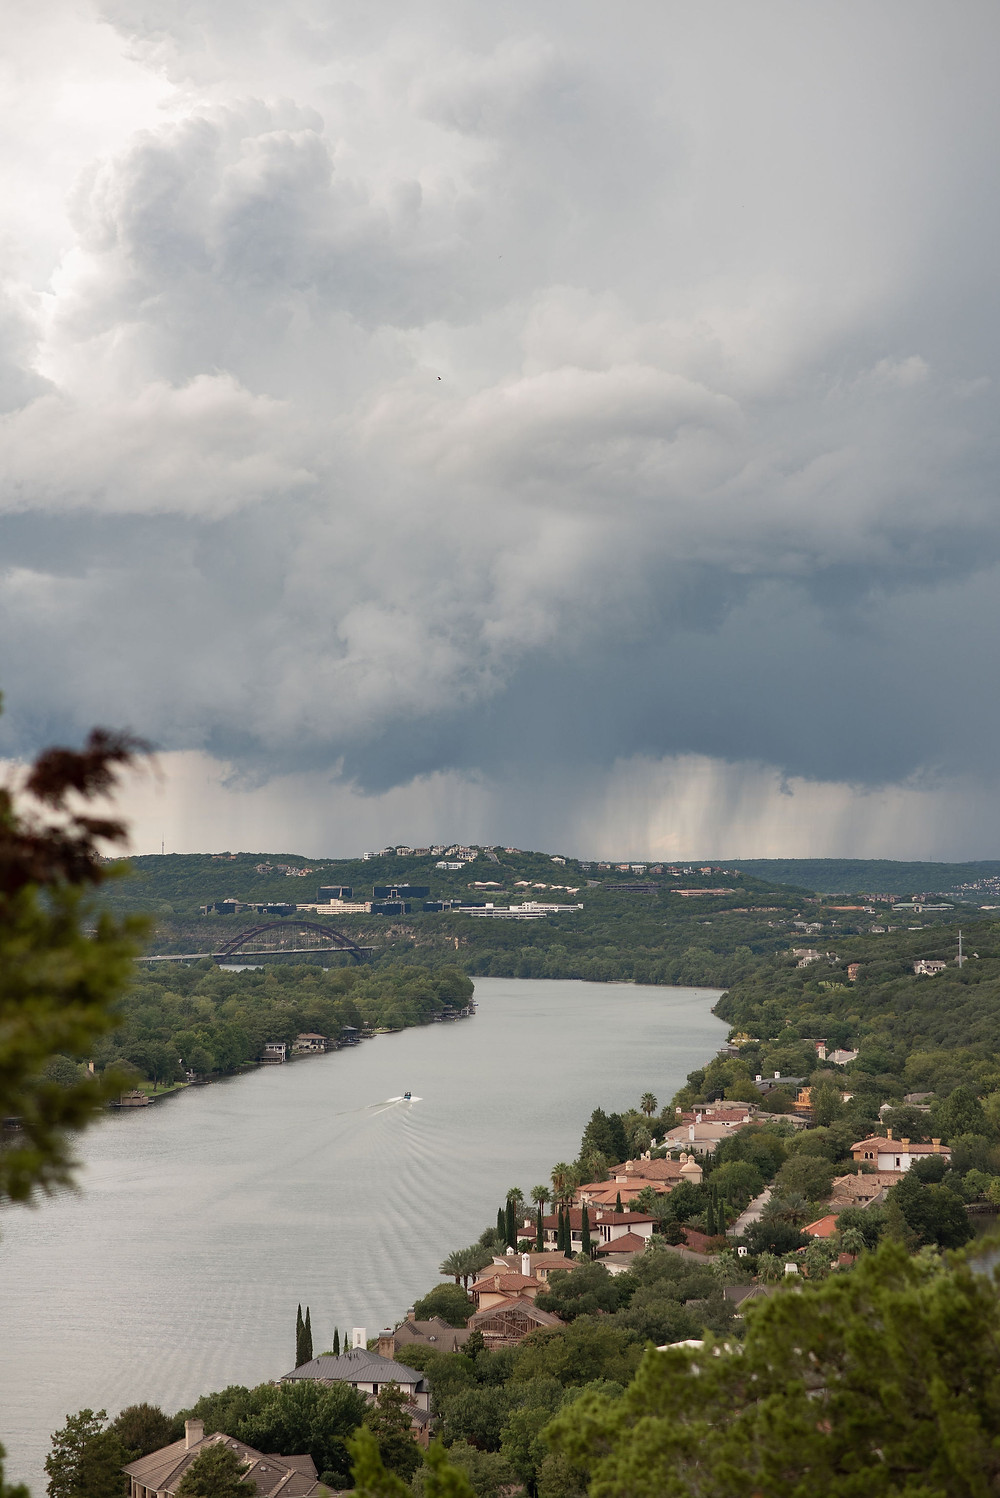 storm clouds and rain in the distance over lake travis. you can see the penny backer bridge in the distance. view from mount bonnell